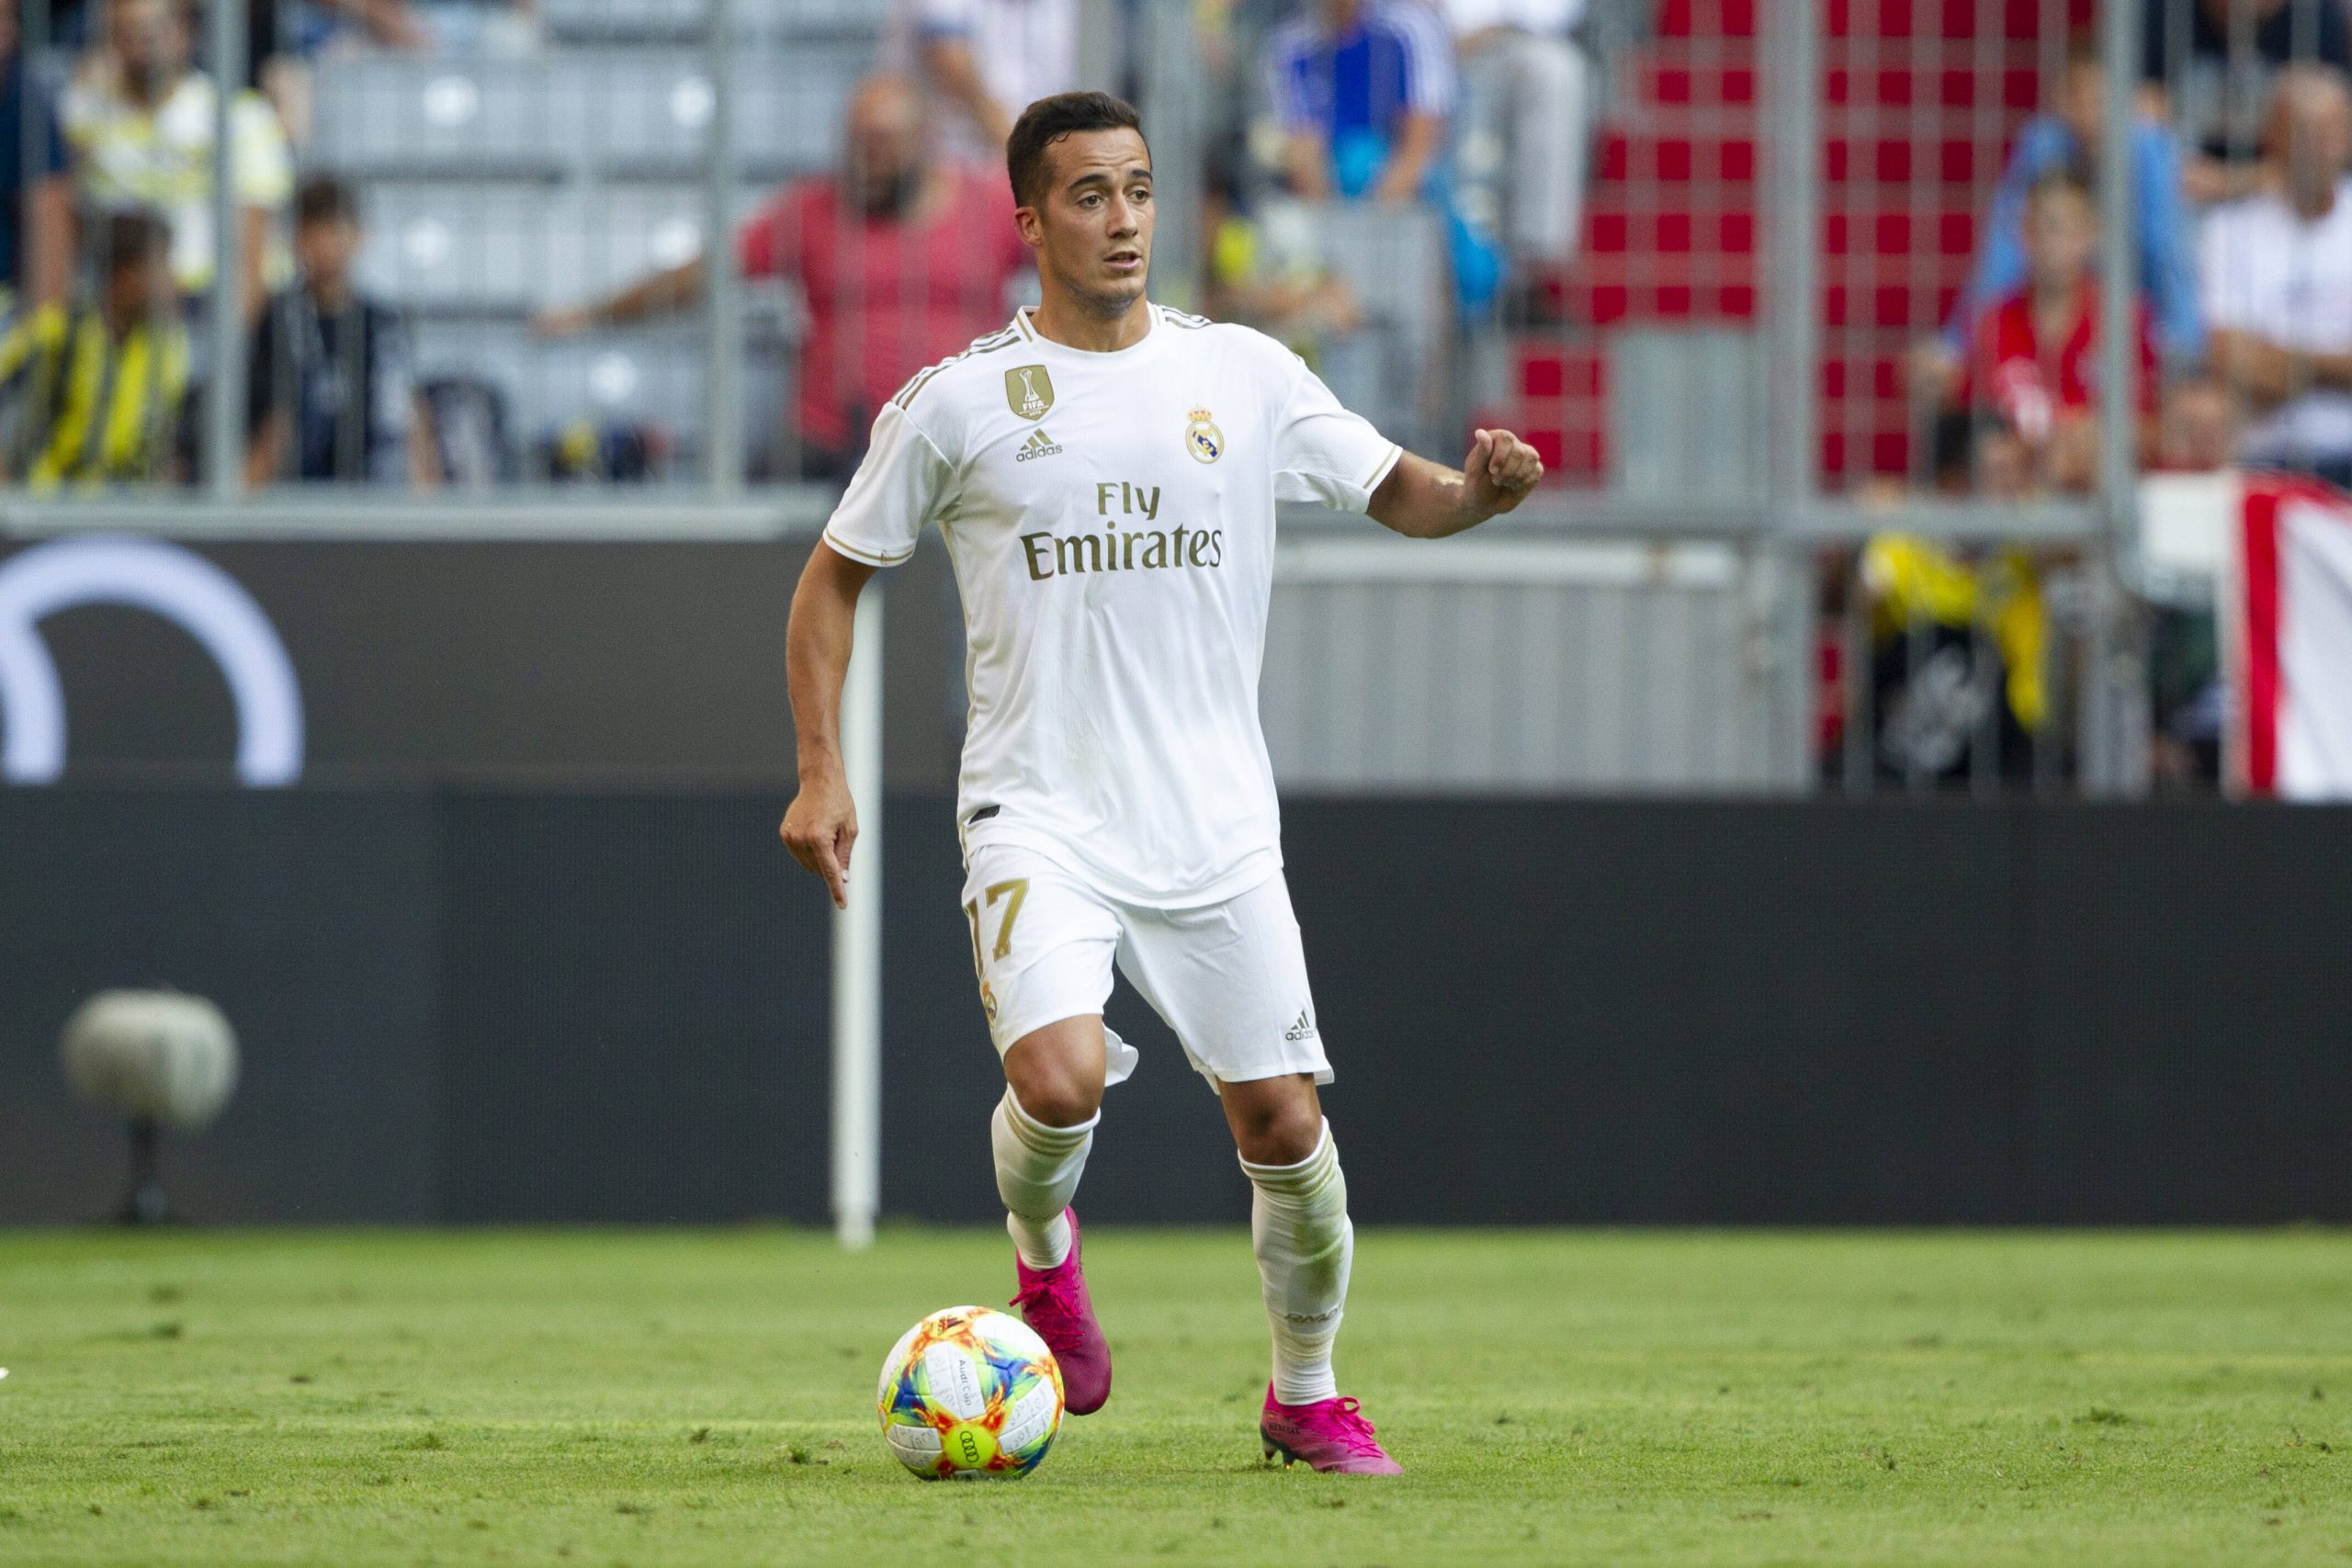 Lucas Vazquez is in the final few weeks of his contract with Real Madrid